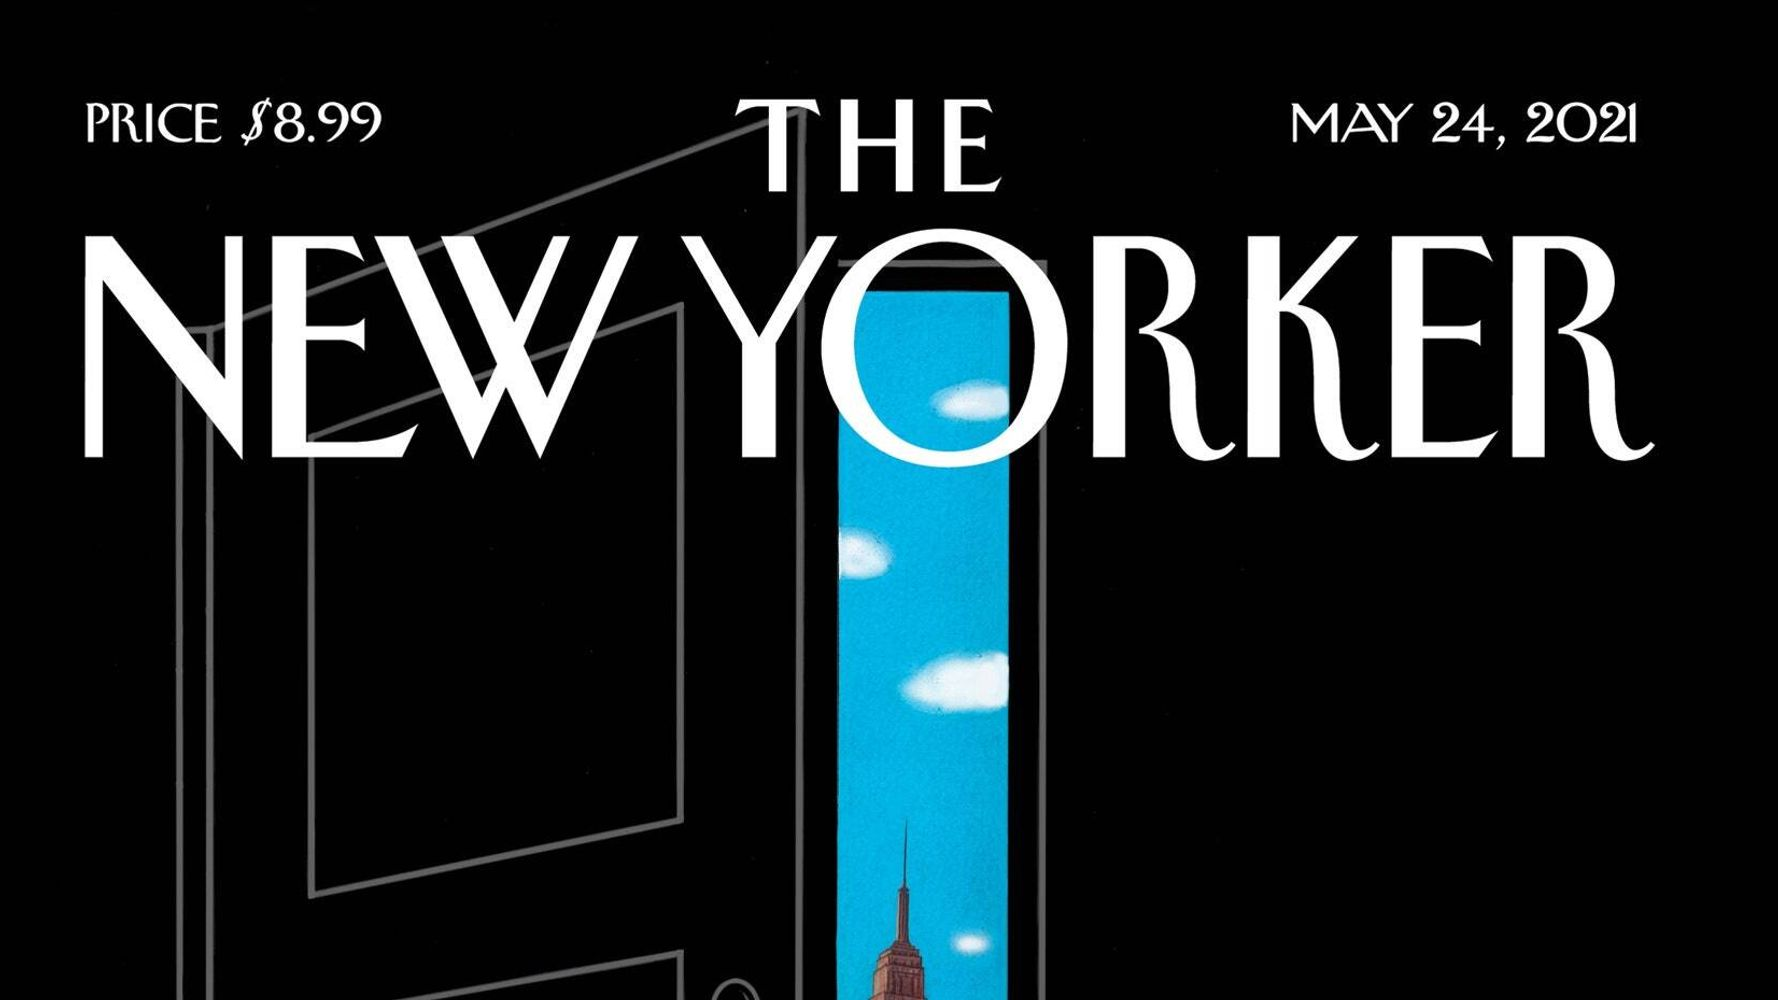 New Yorker Cover Offers A Tantalizing Glimpse Into A Post-Pandemic World